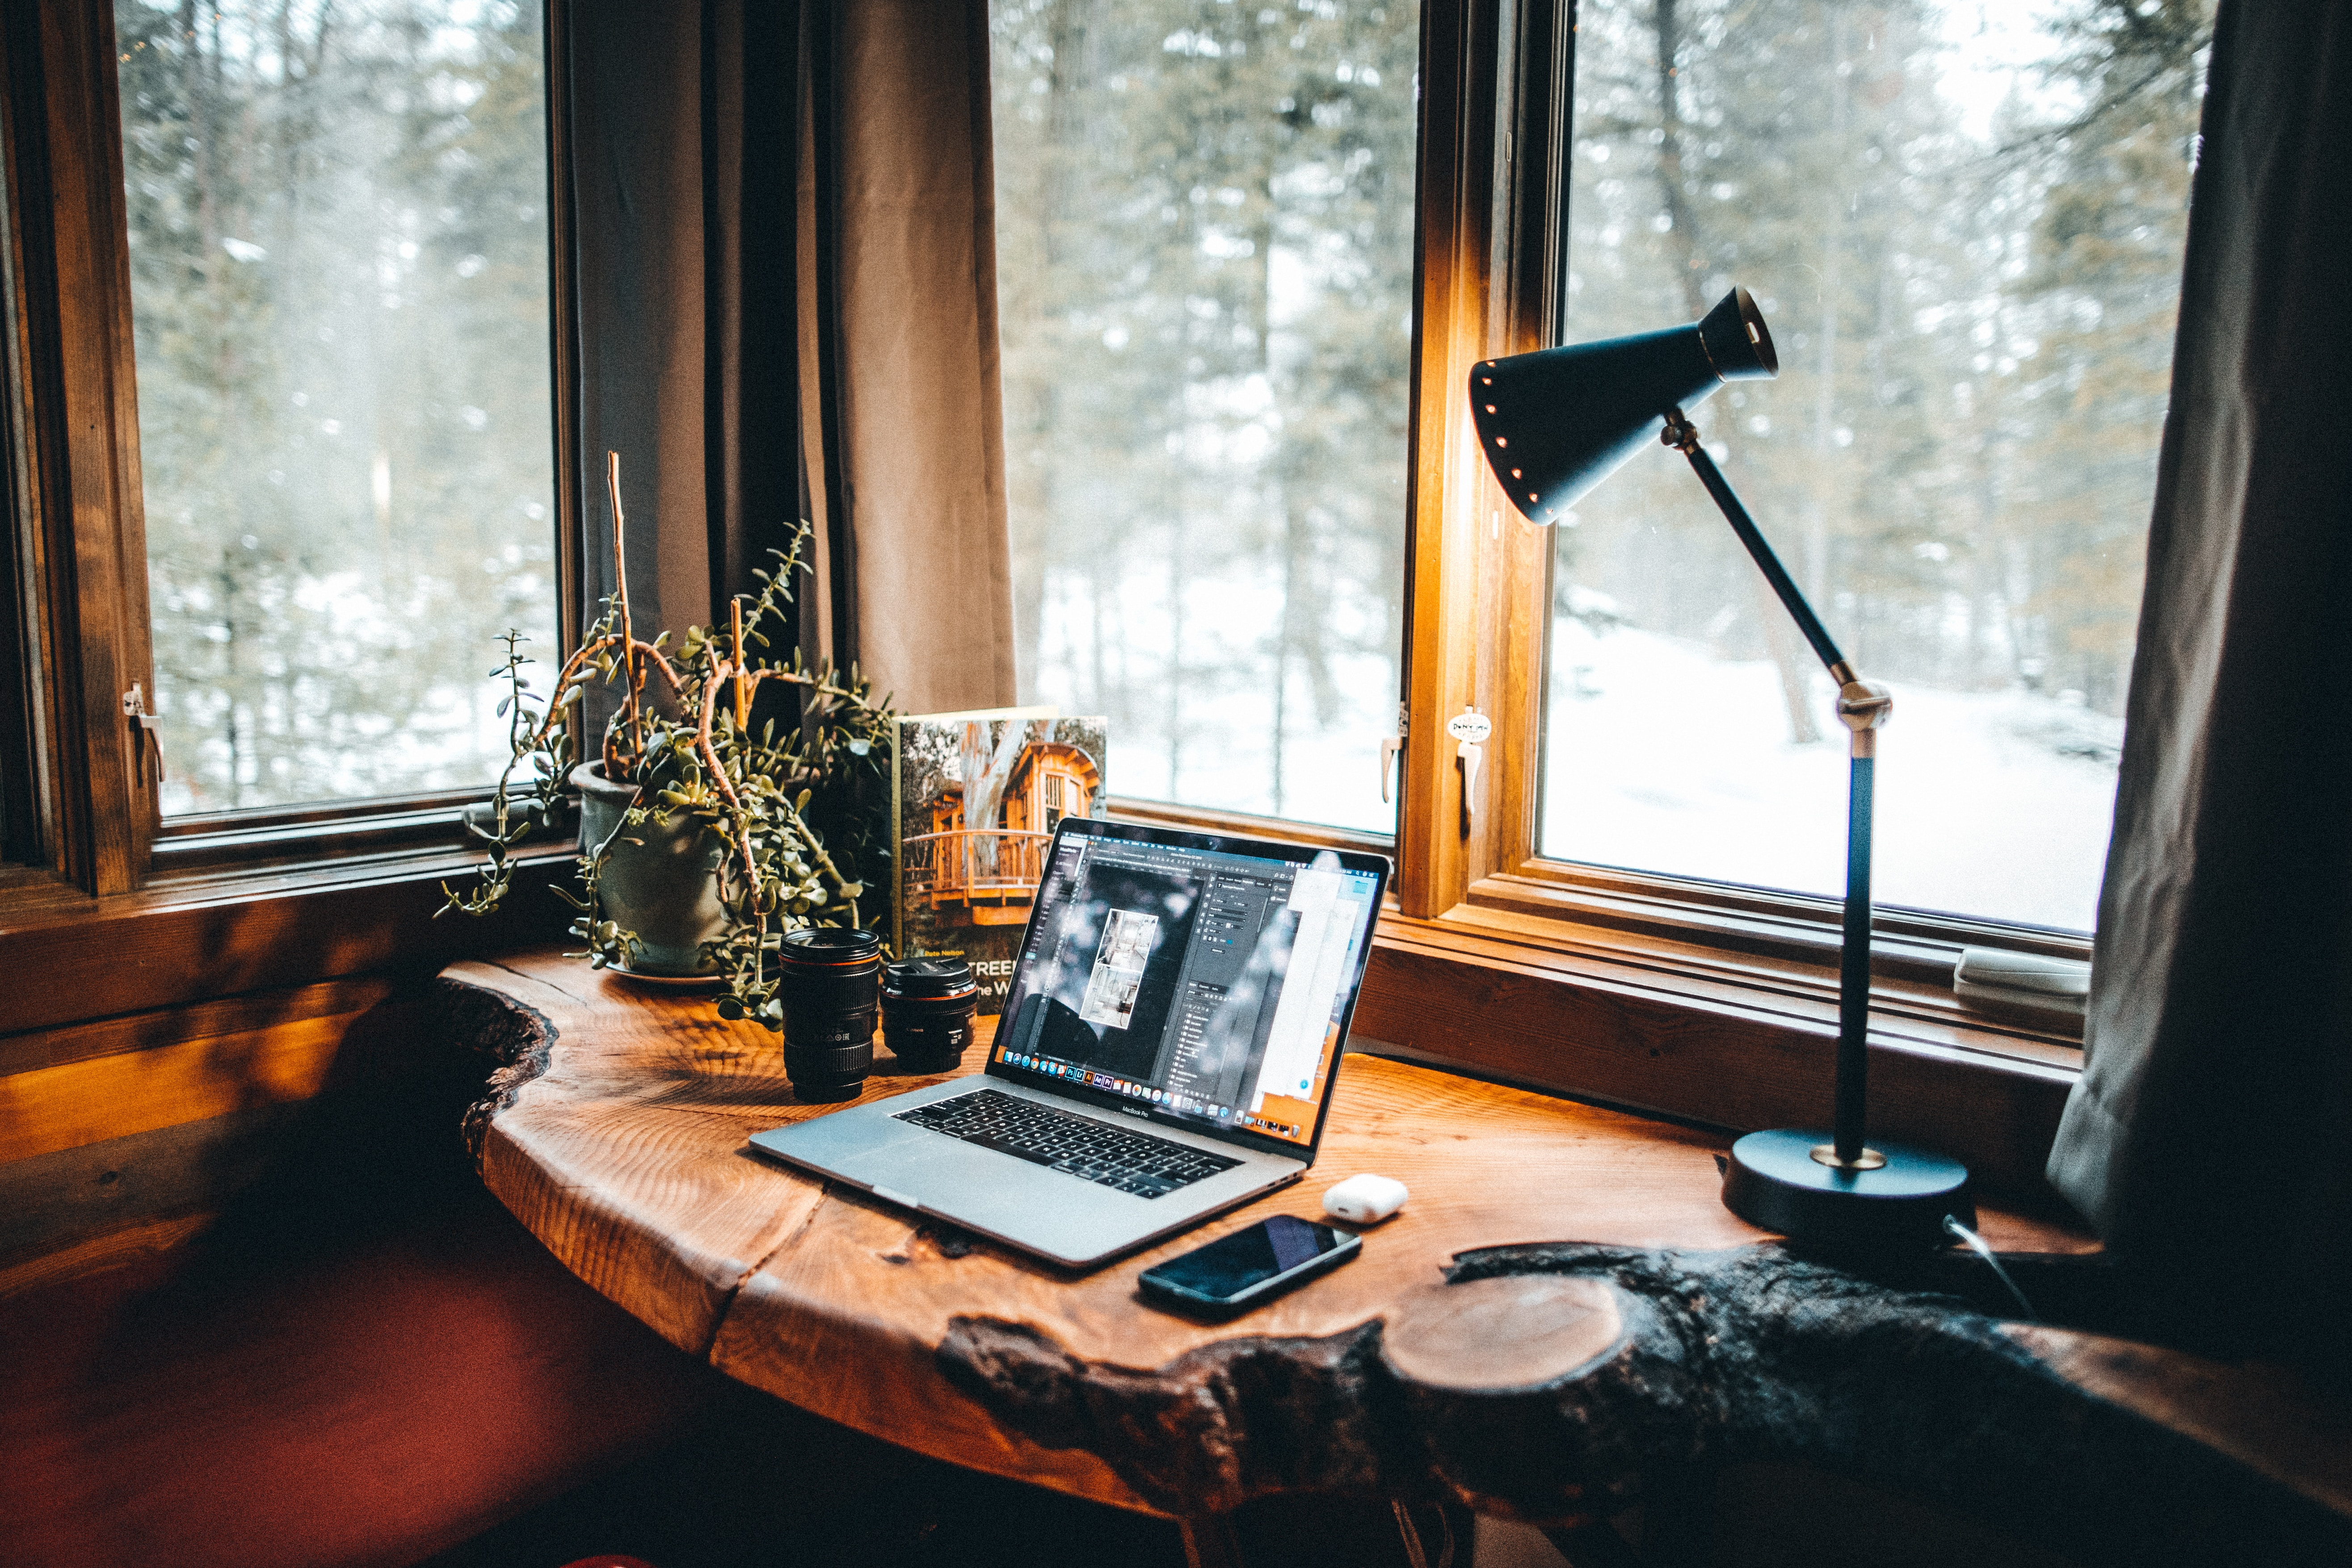 a laptop by a window, snow outside